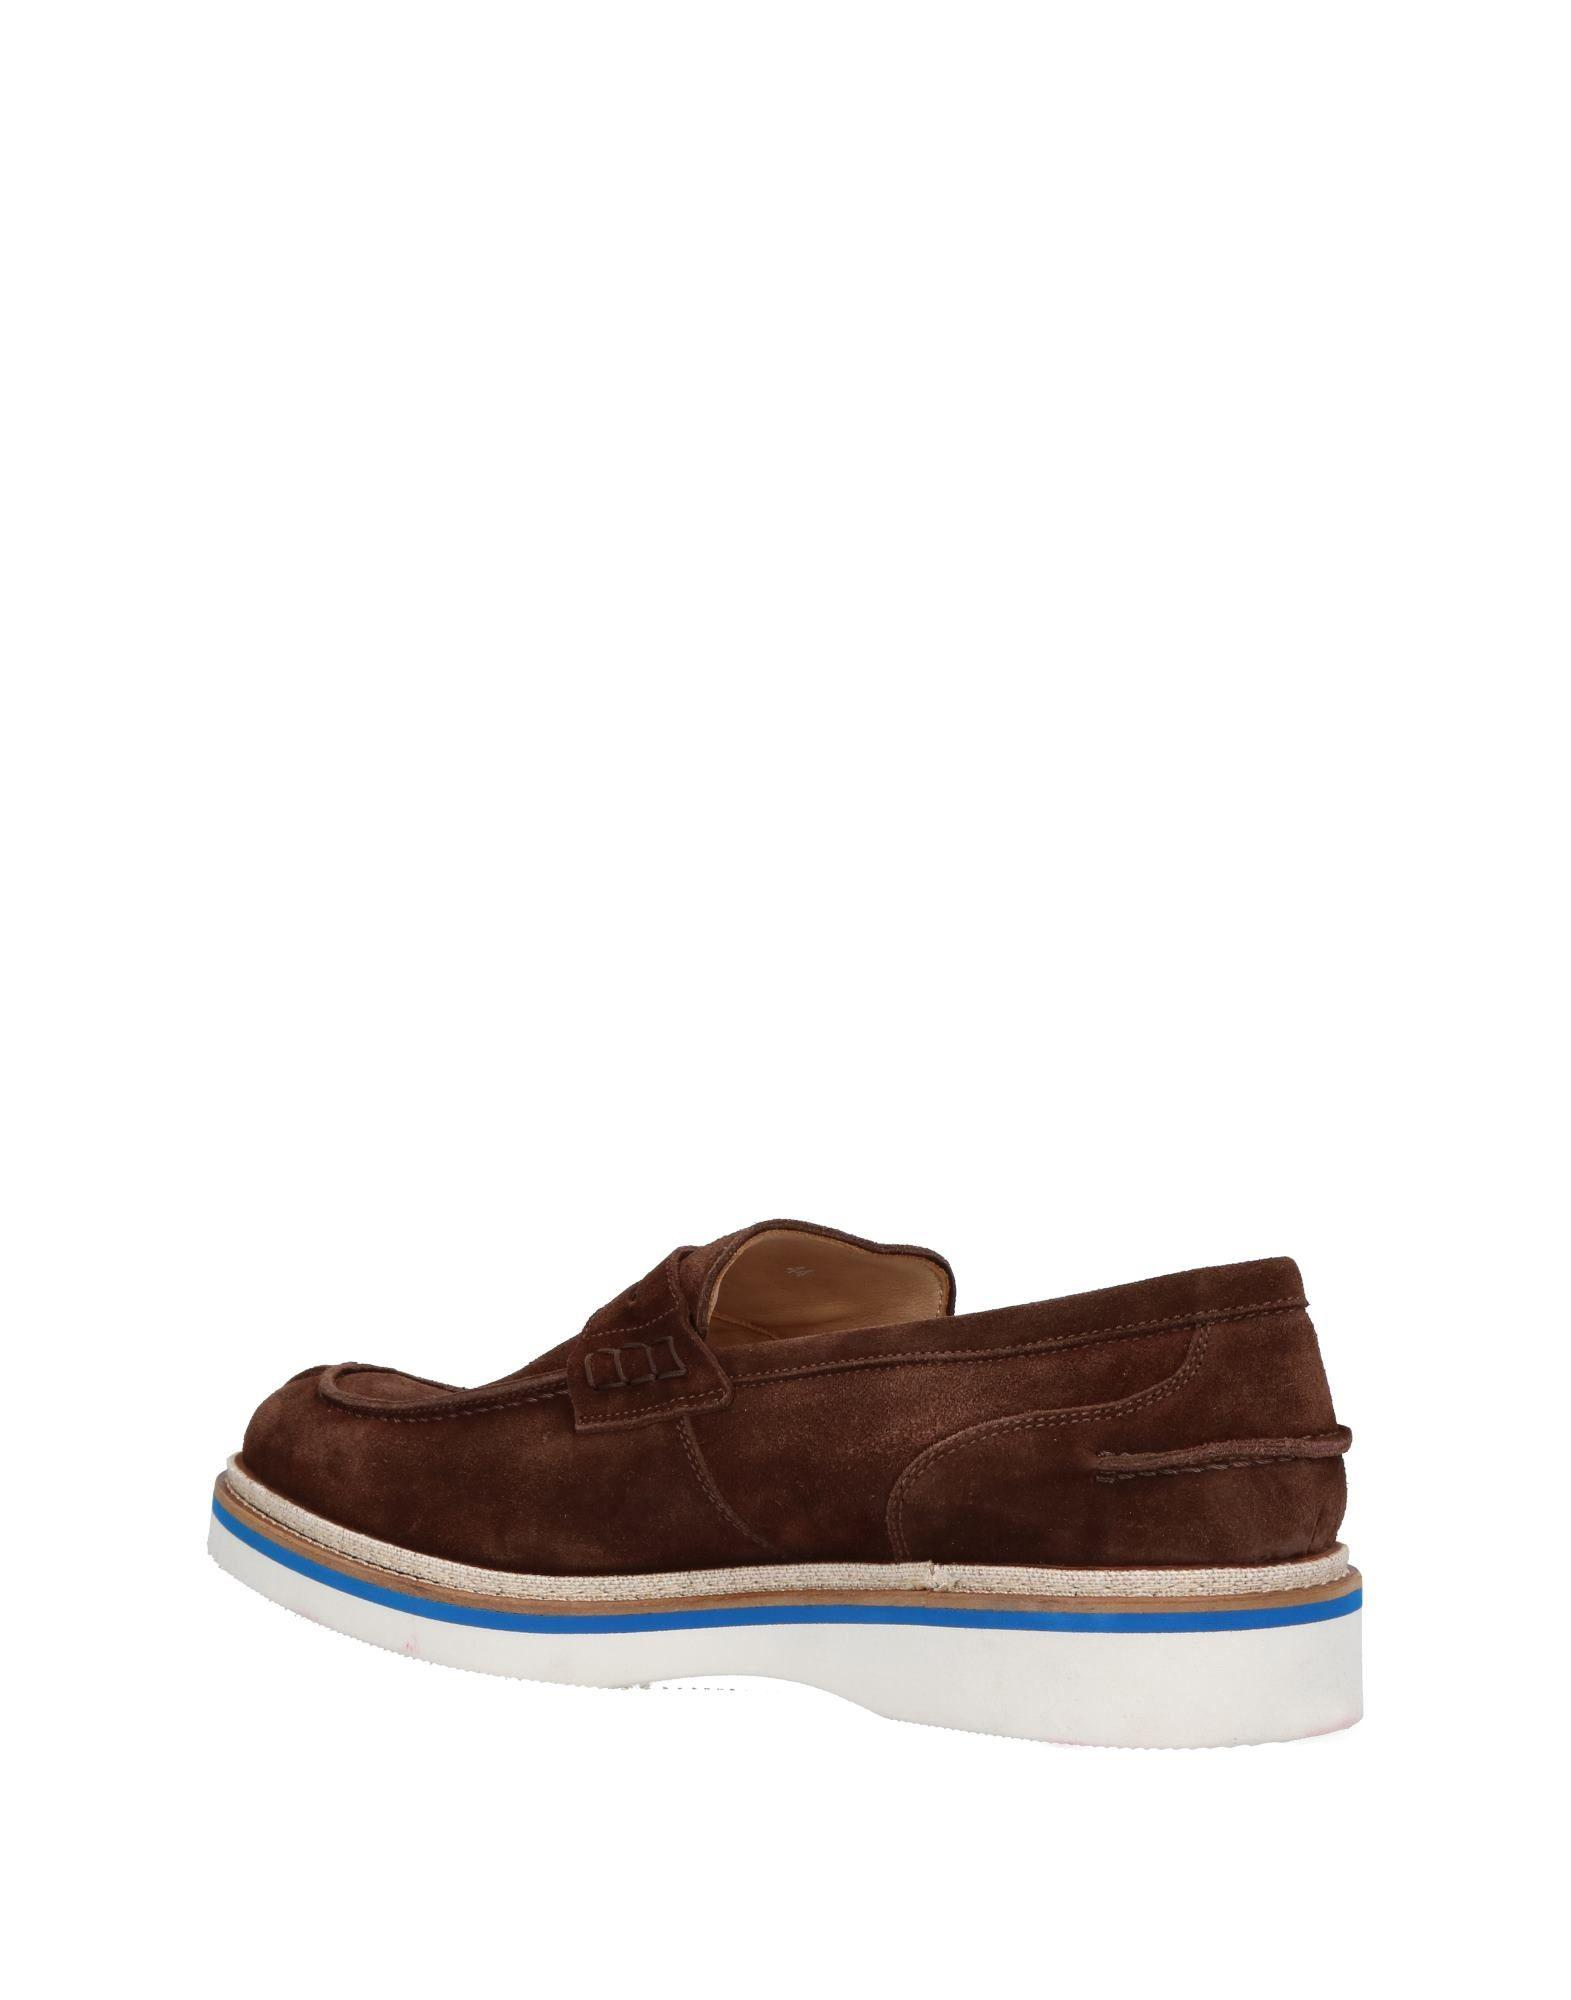 Gold Brothers Leather Loafer in Dark Brown (Brown) for Men